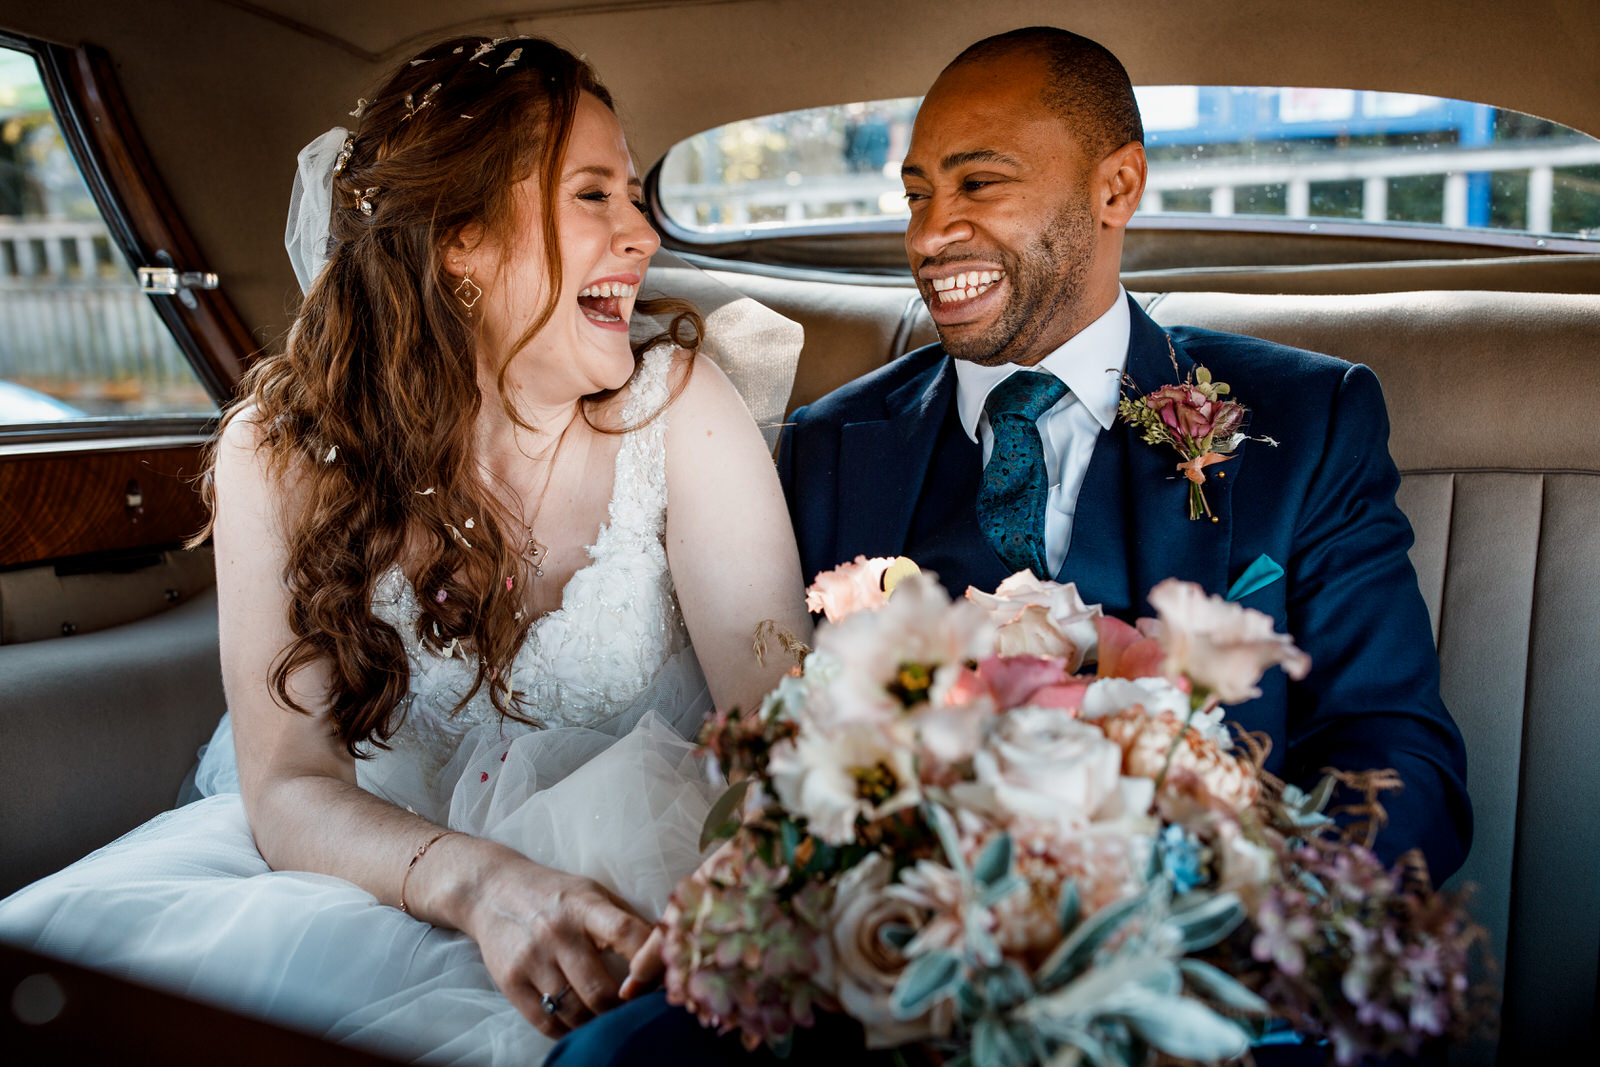 birde and groom inside wedding car